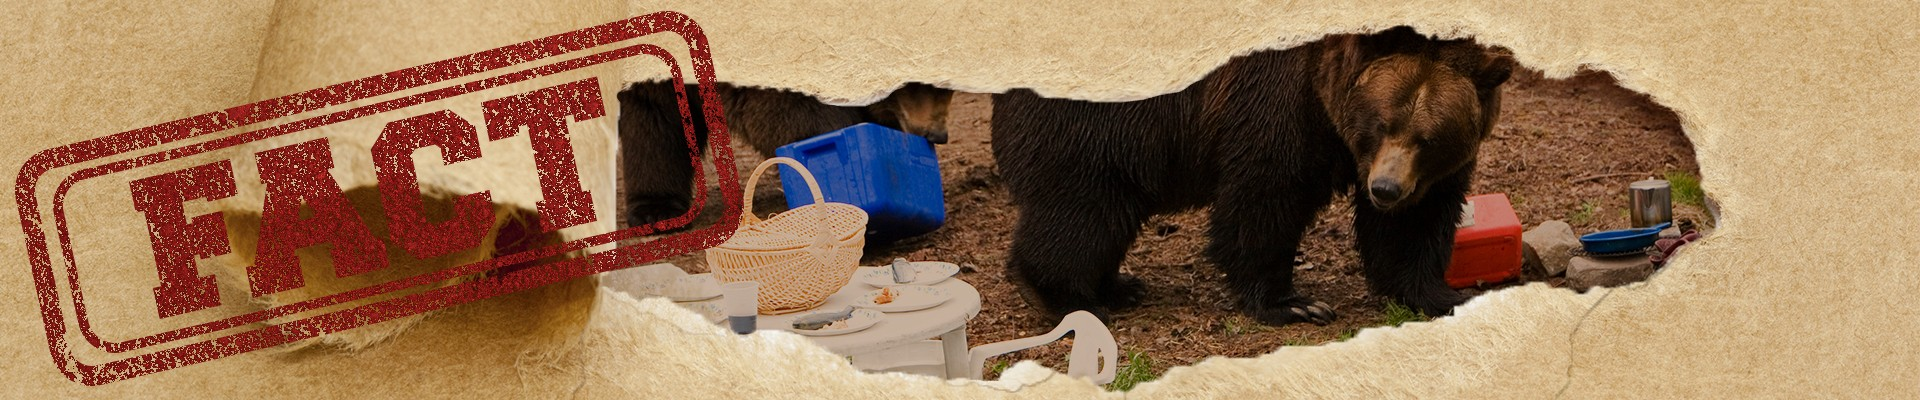 Hide your food while camping to avoid attracting bears to your site.